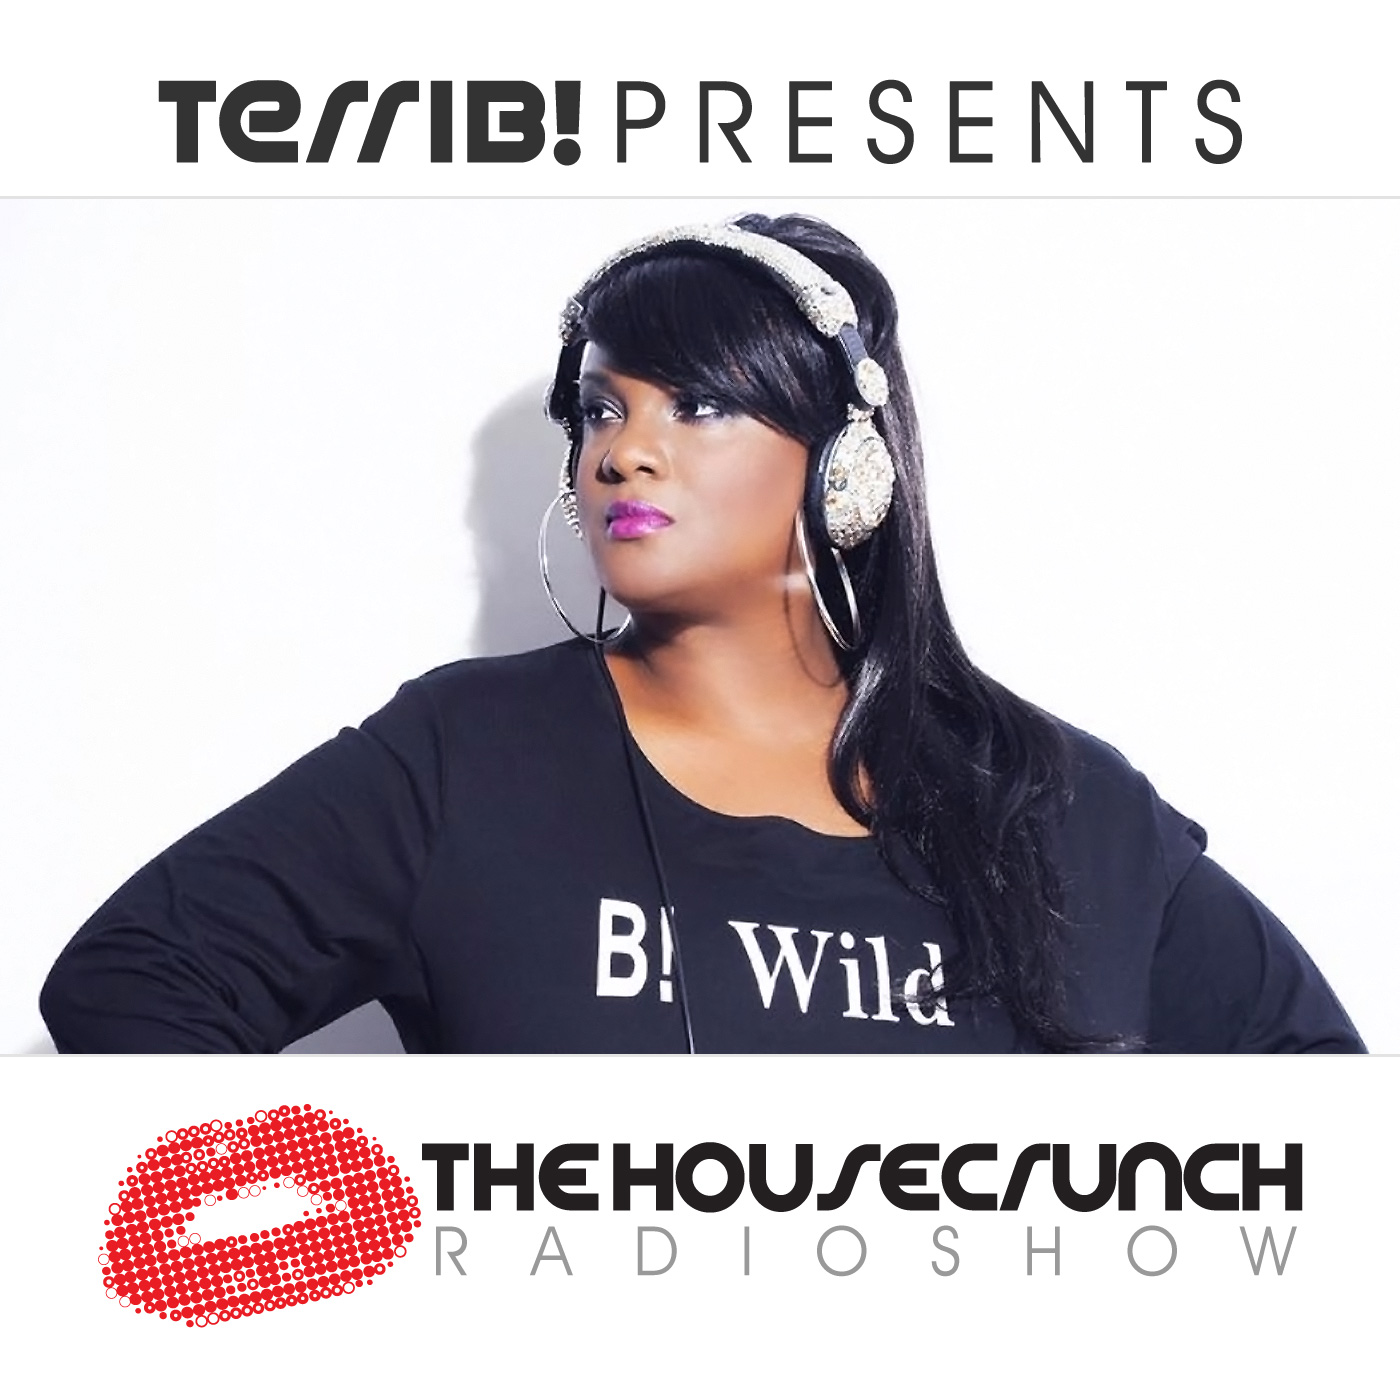 The HouseCrunch Radio Show Episode #367 Terri B! ft. George Von Liger